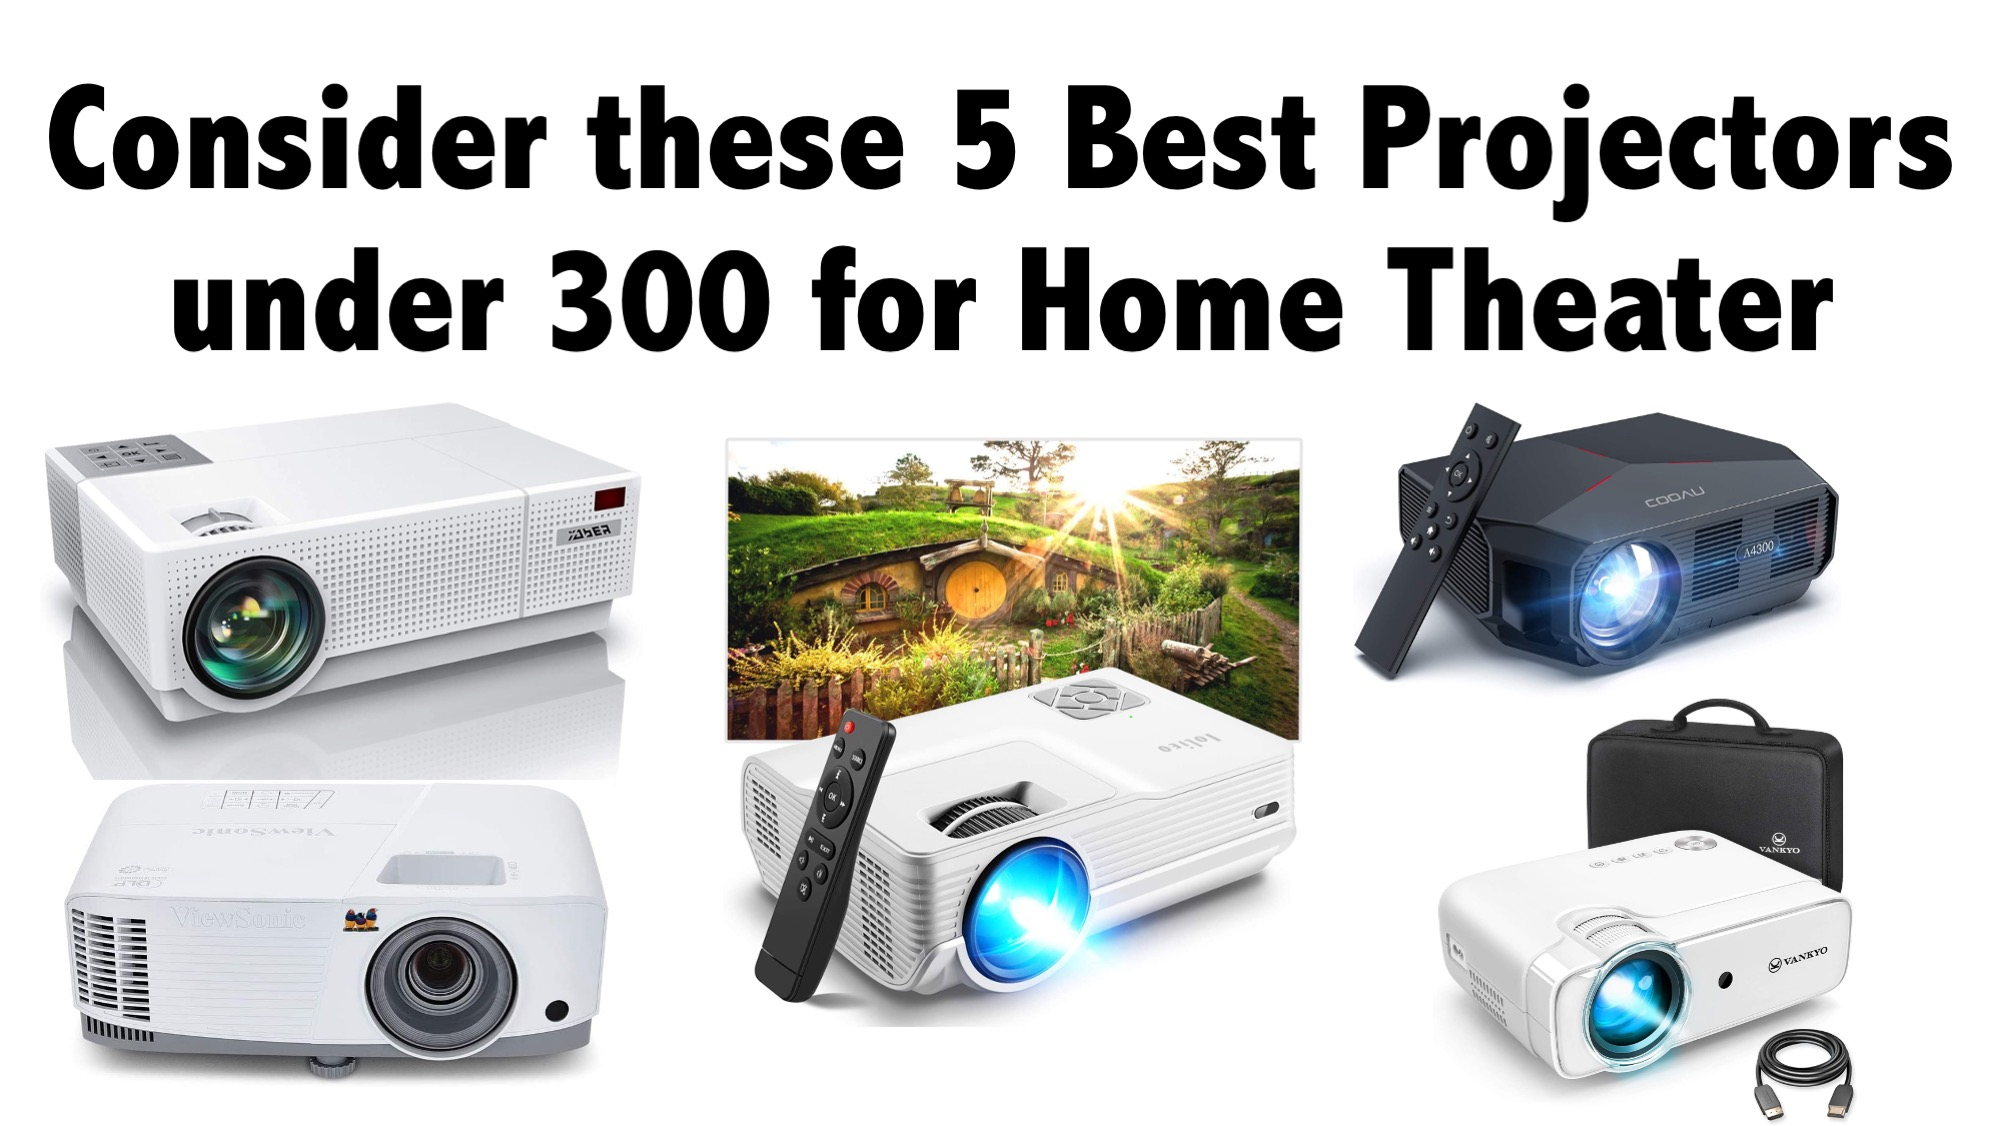 Consider these 5 Best Projectors under 300 for Home Theater